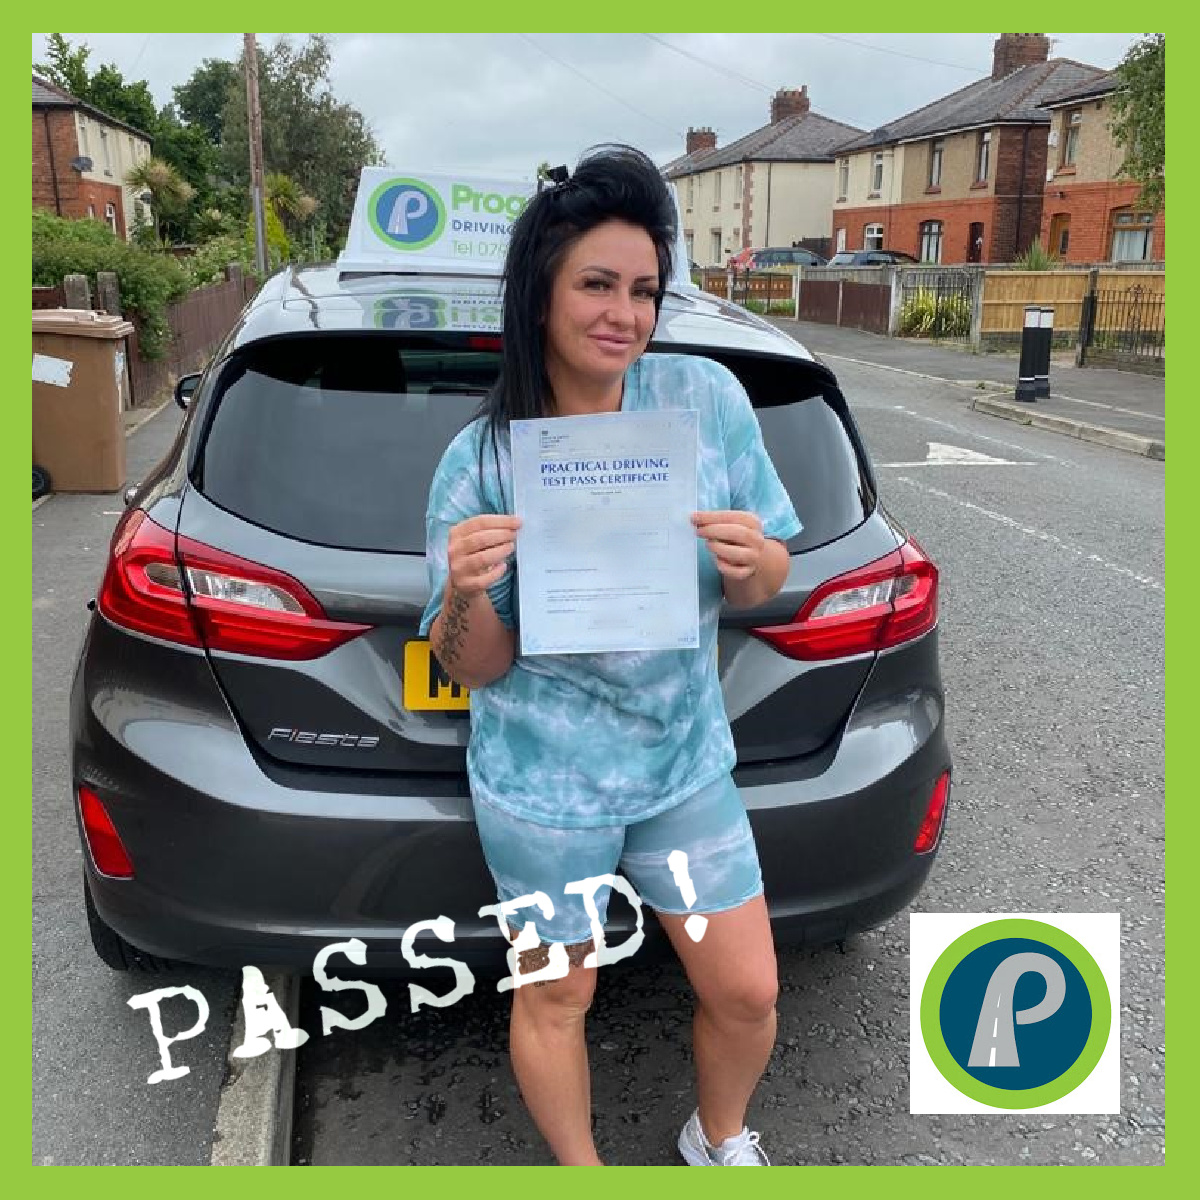 Amy passed her driving test with Progress Driving School